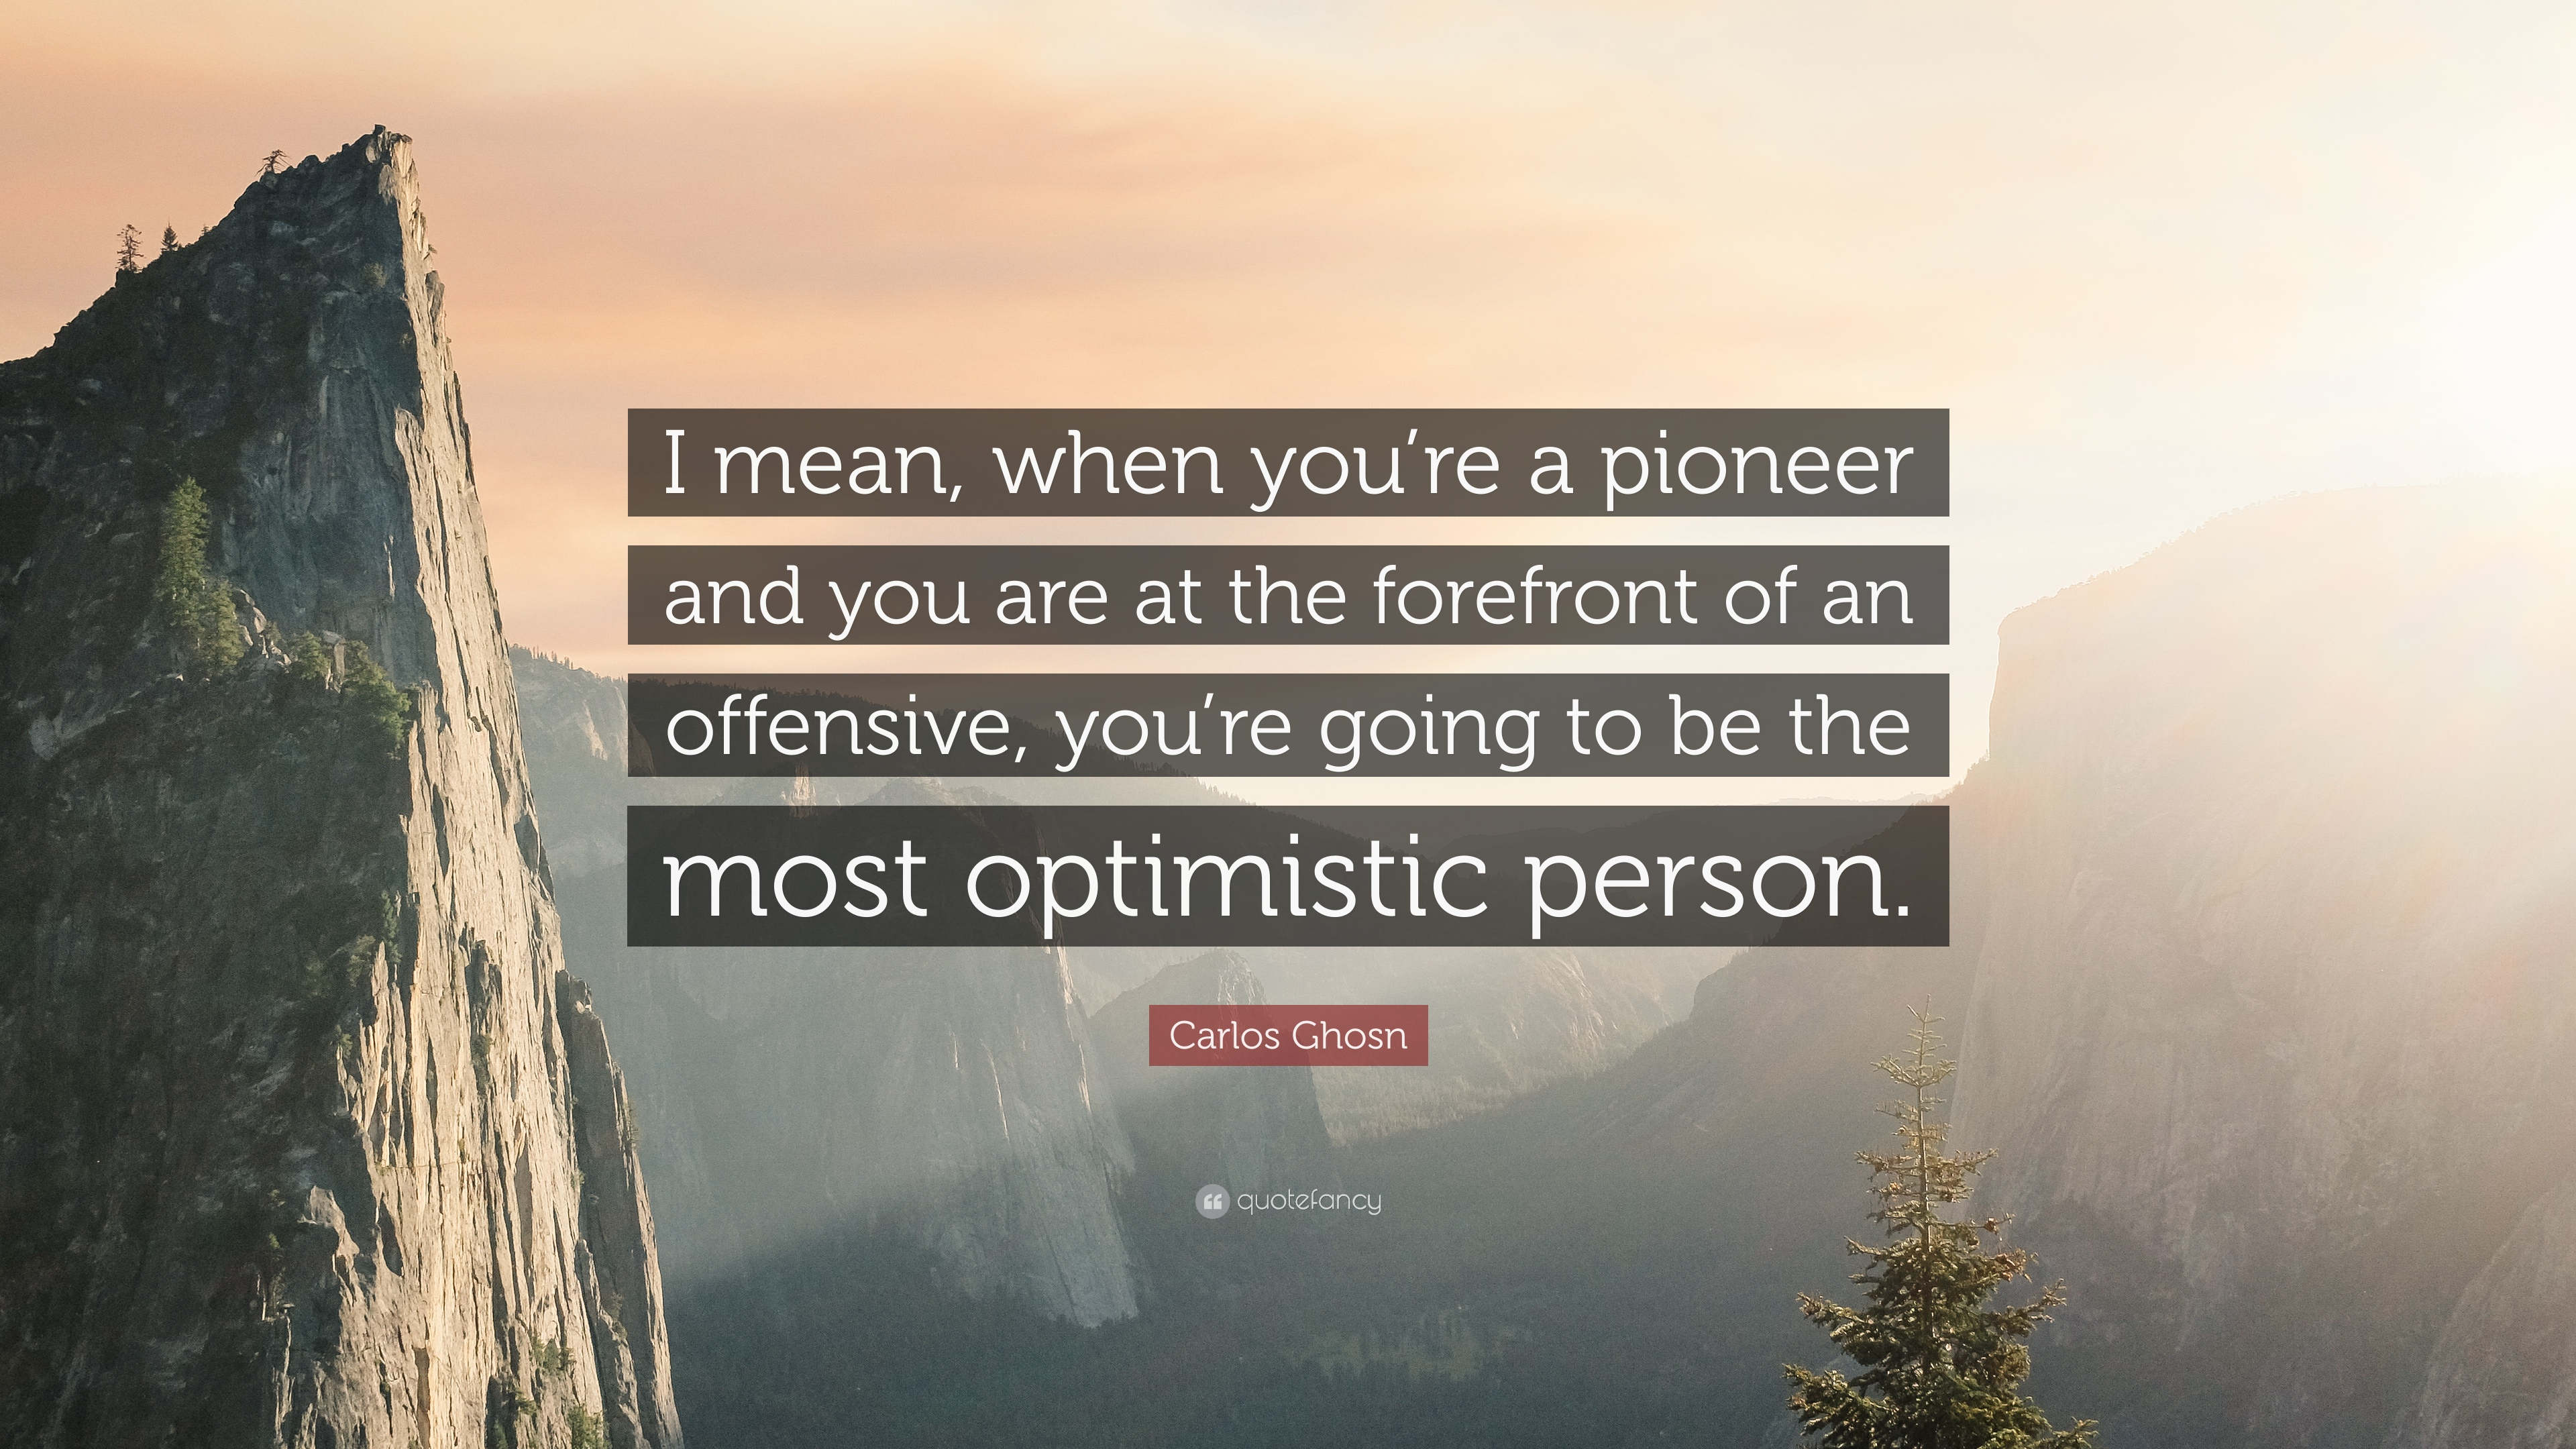 what does optimistic person mean